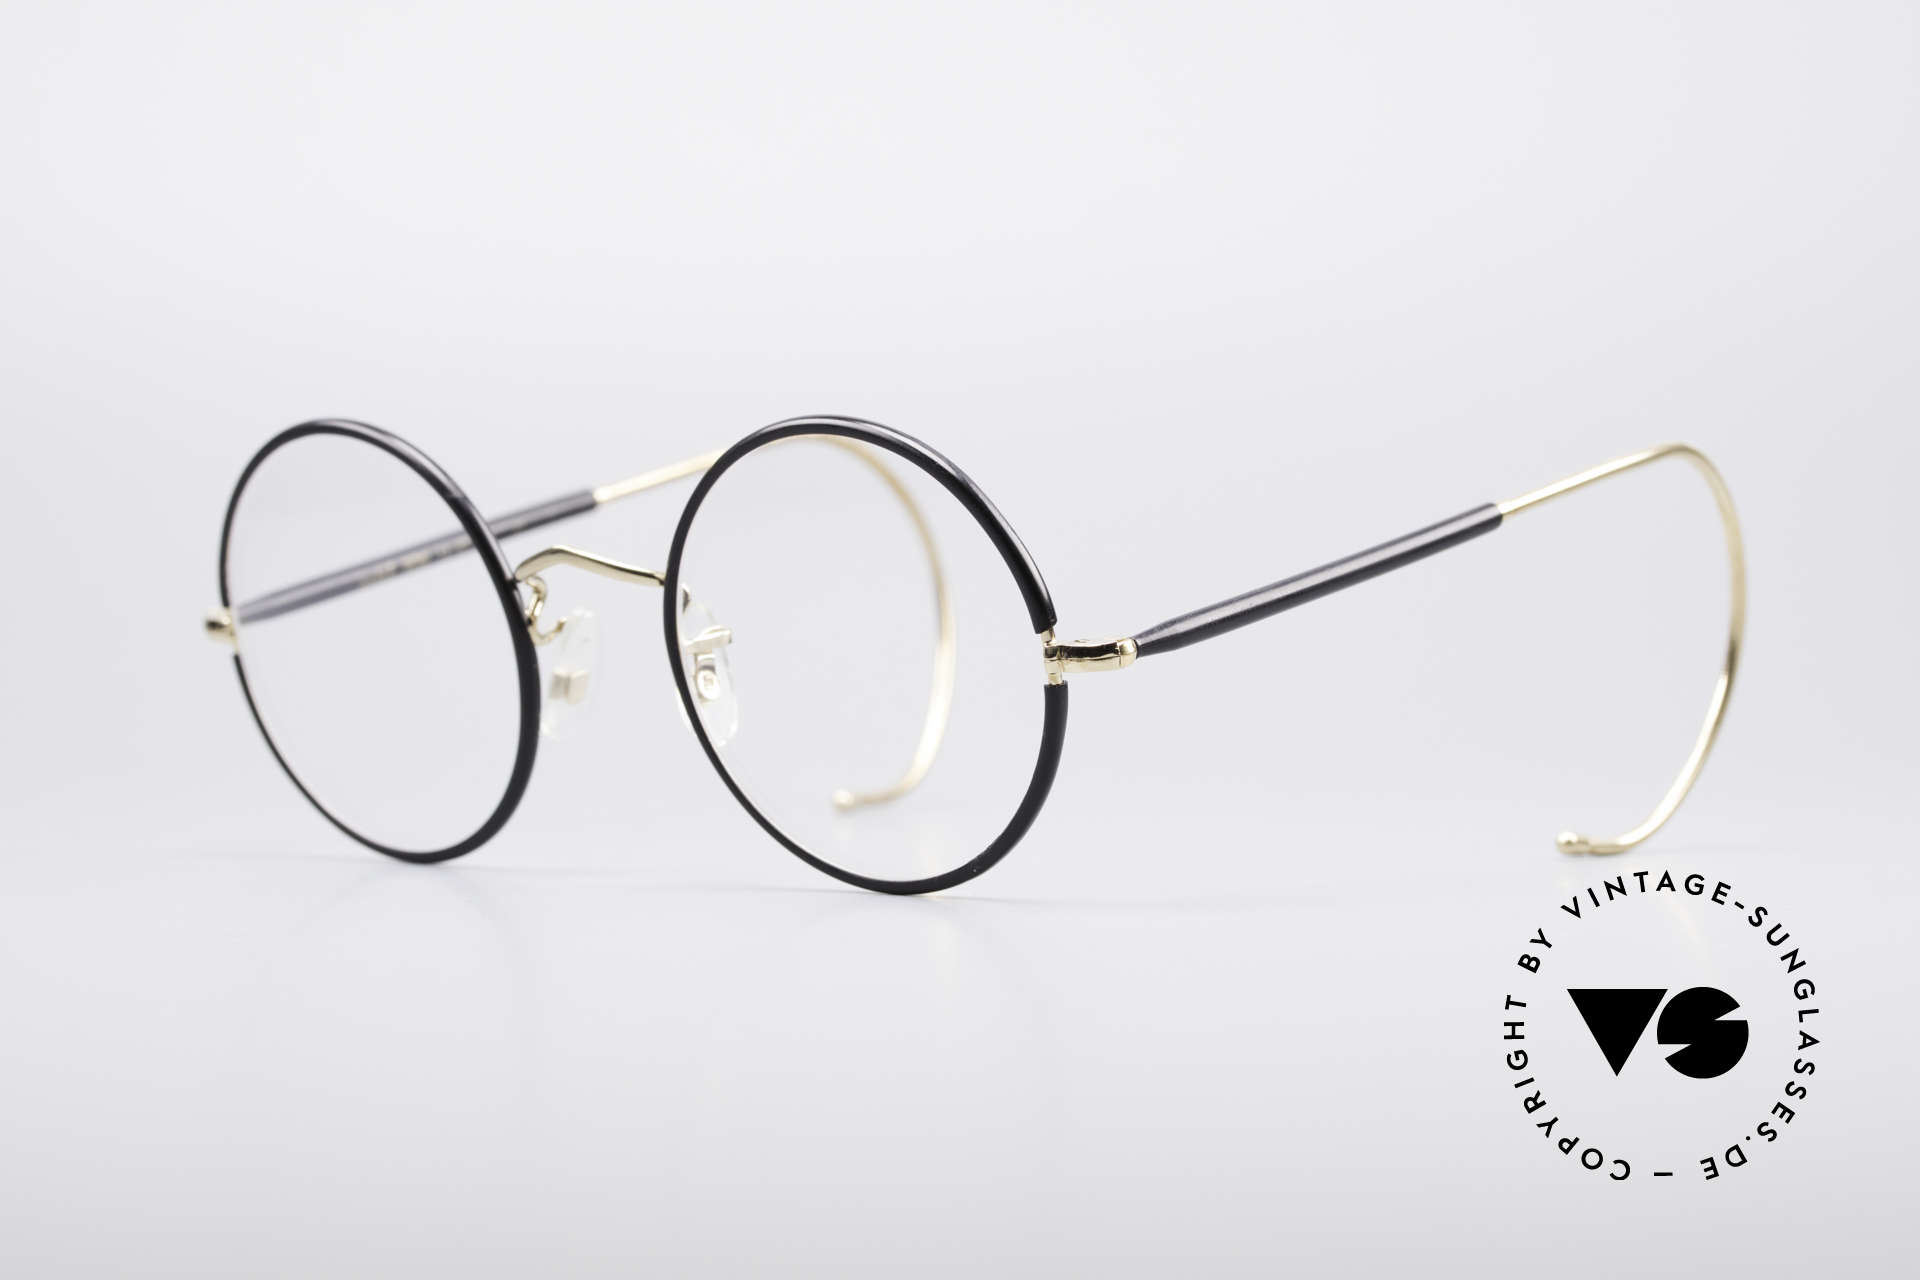 Savile Row Round 47/22 Harry Potter Glasses, finest manufacturing (gold-filled), made in England, Made for Men